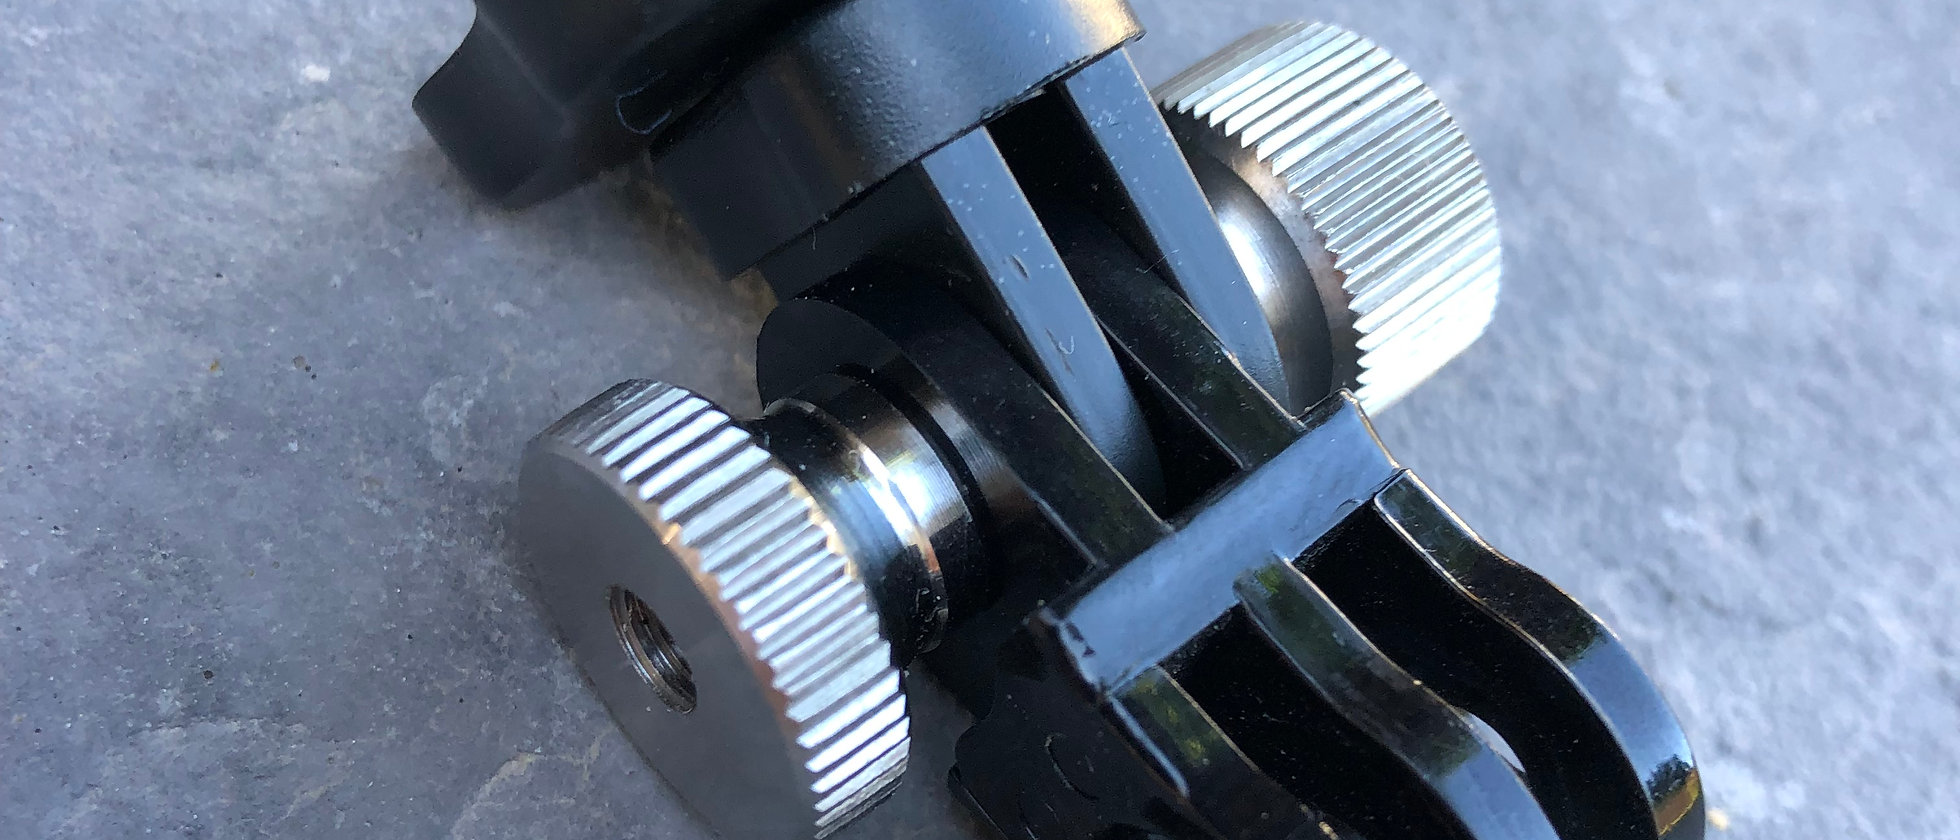 * THE S30400 STAINLESS STEEL BOLT 3/4